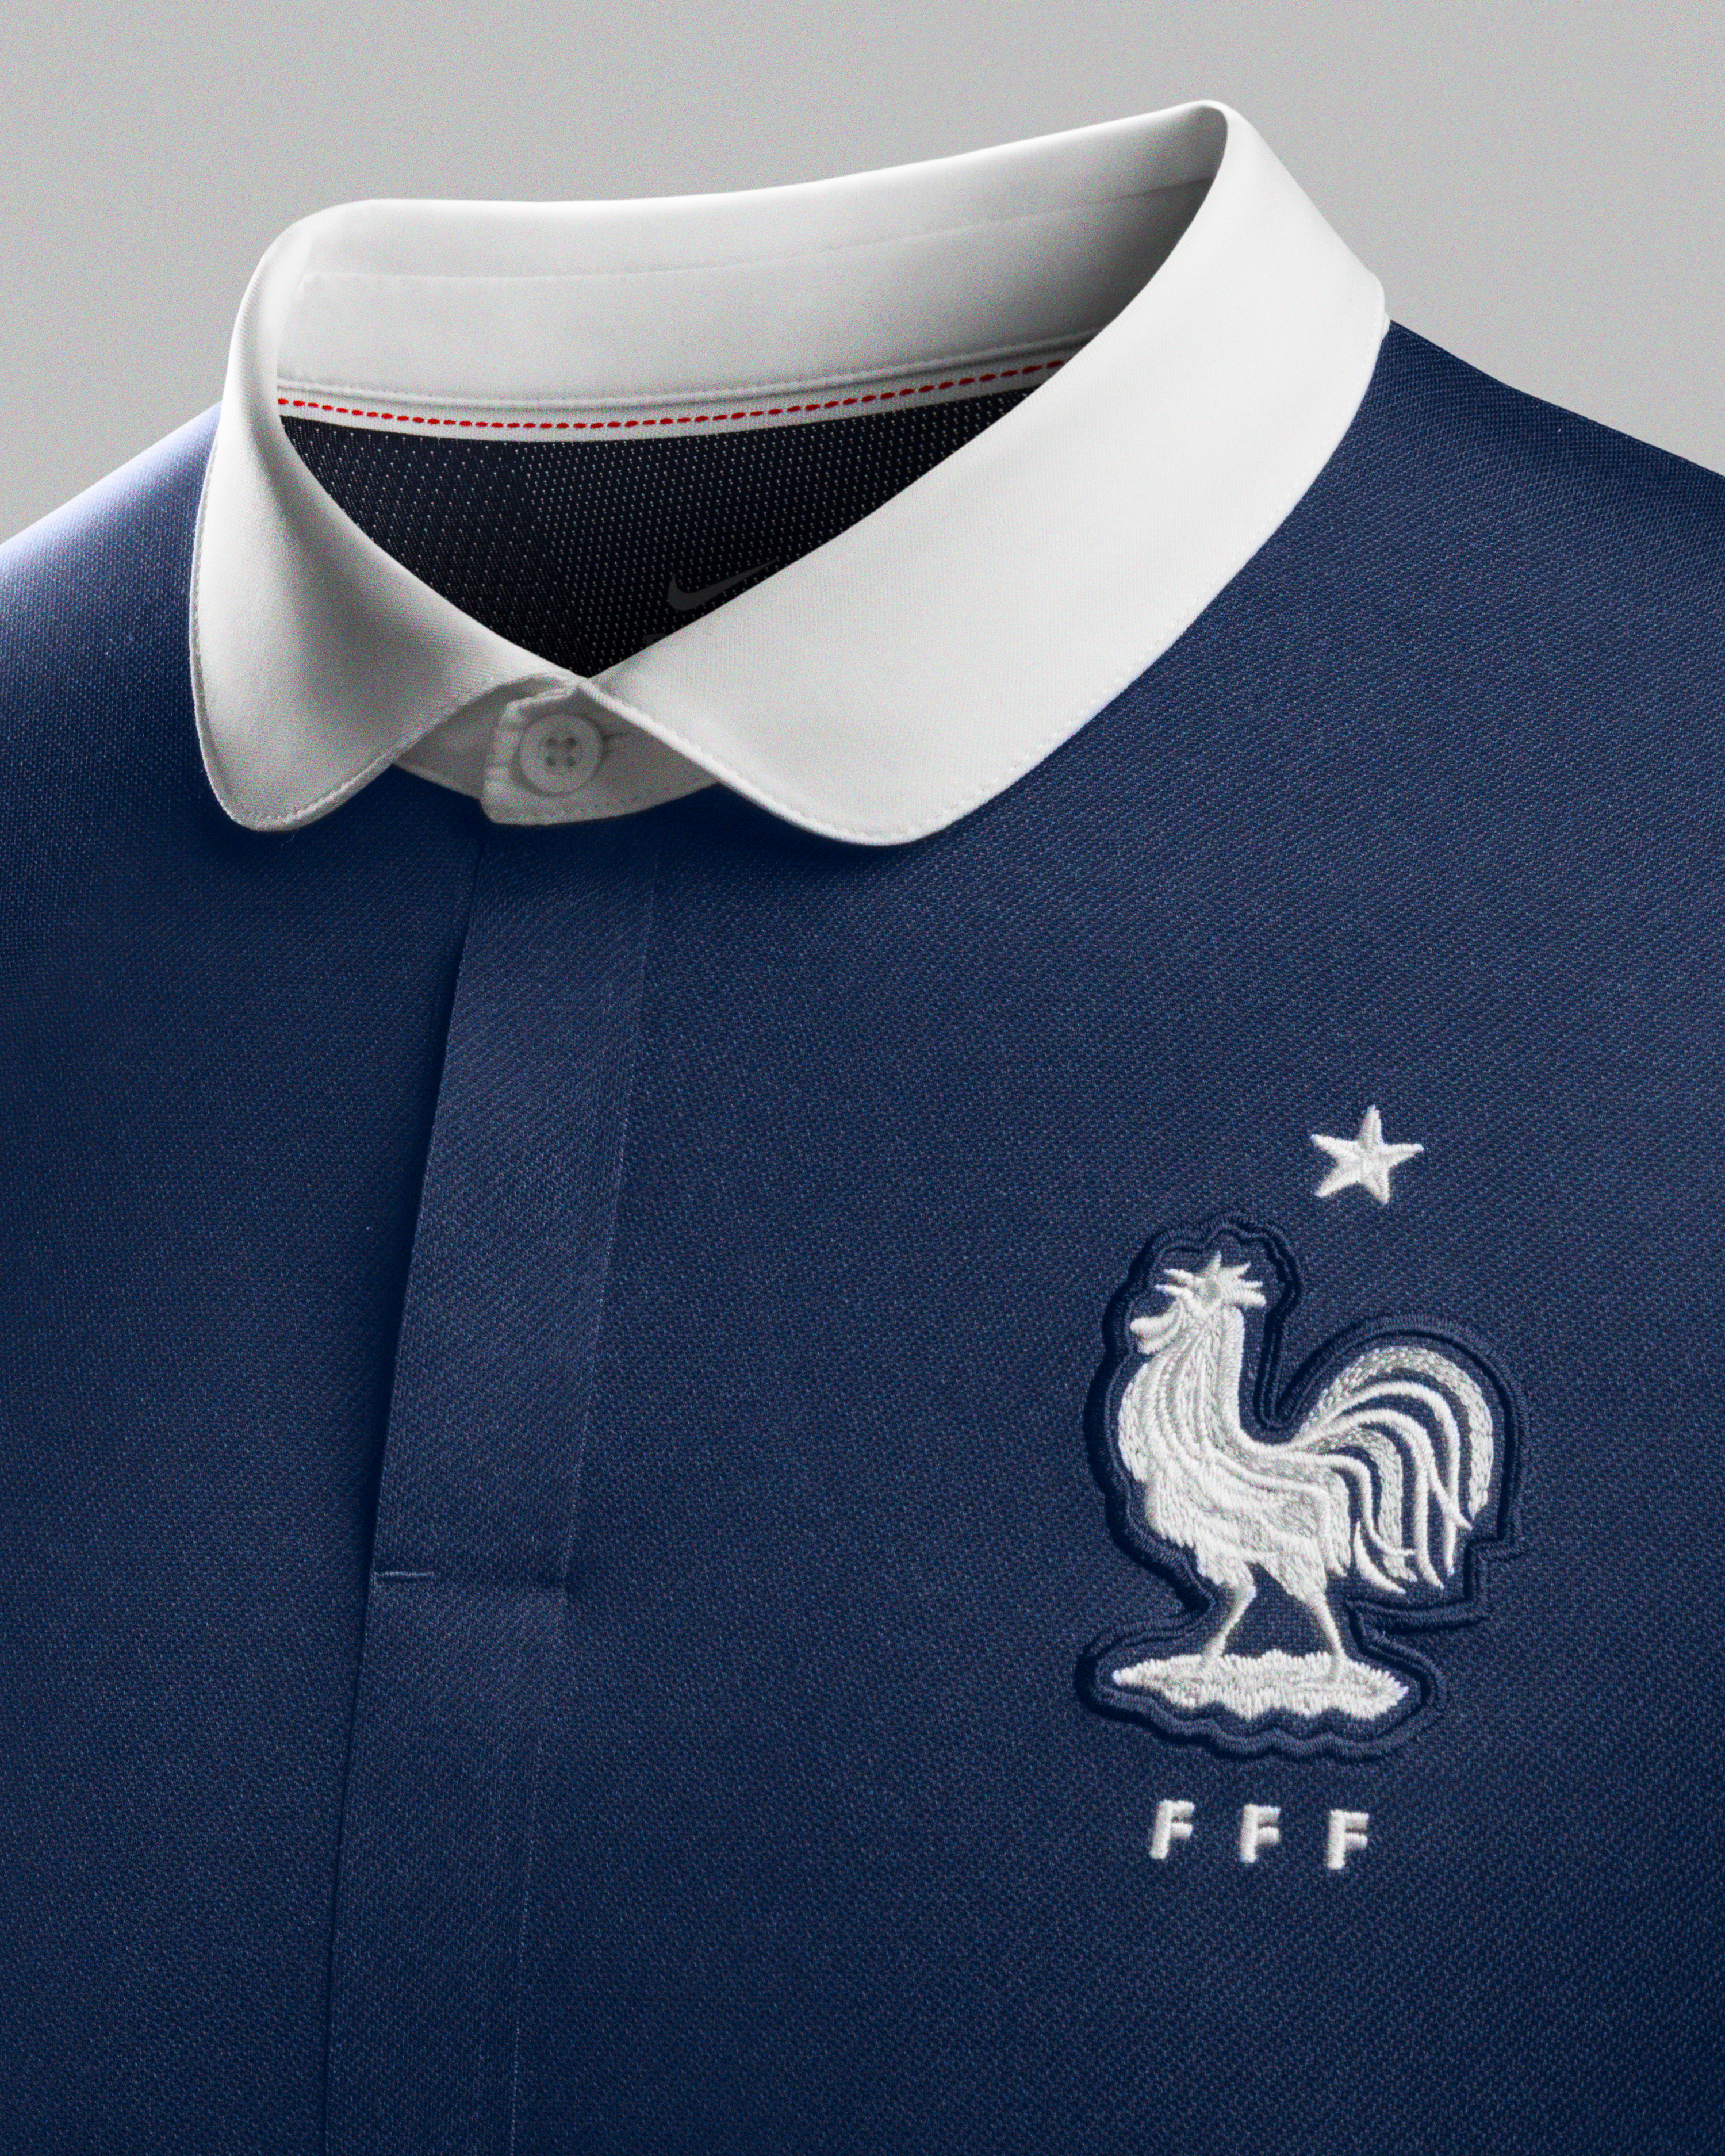 france team jersey